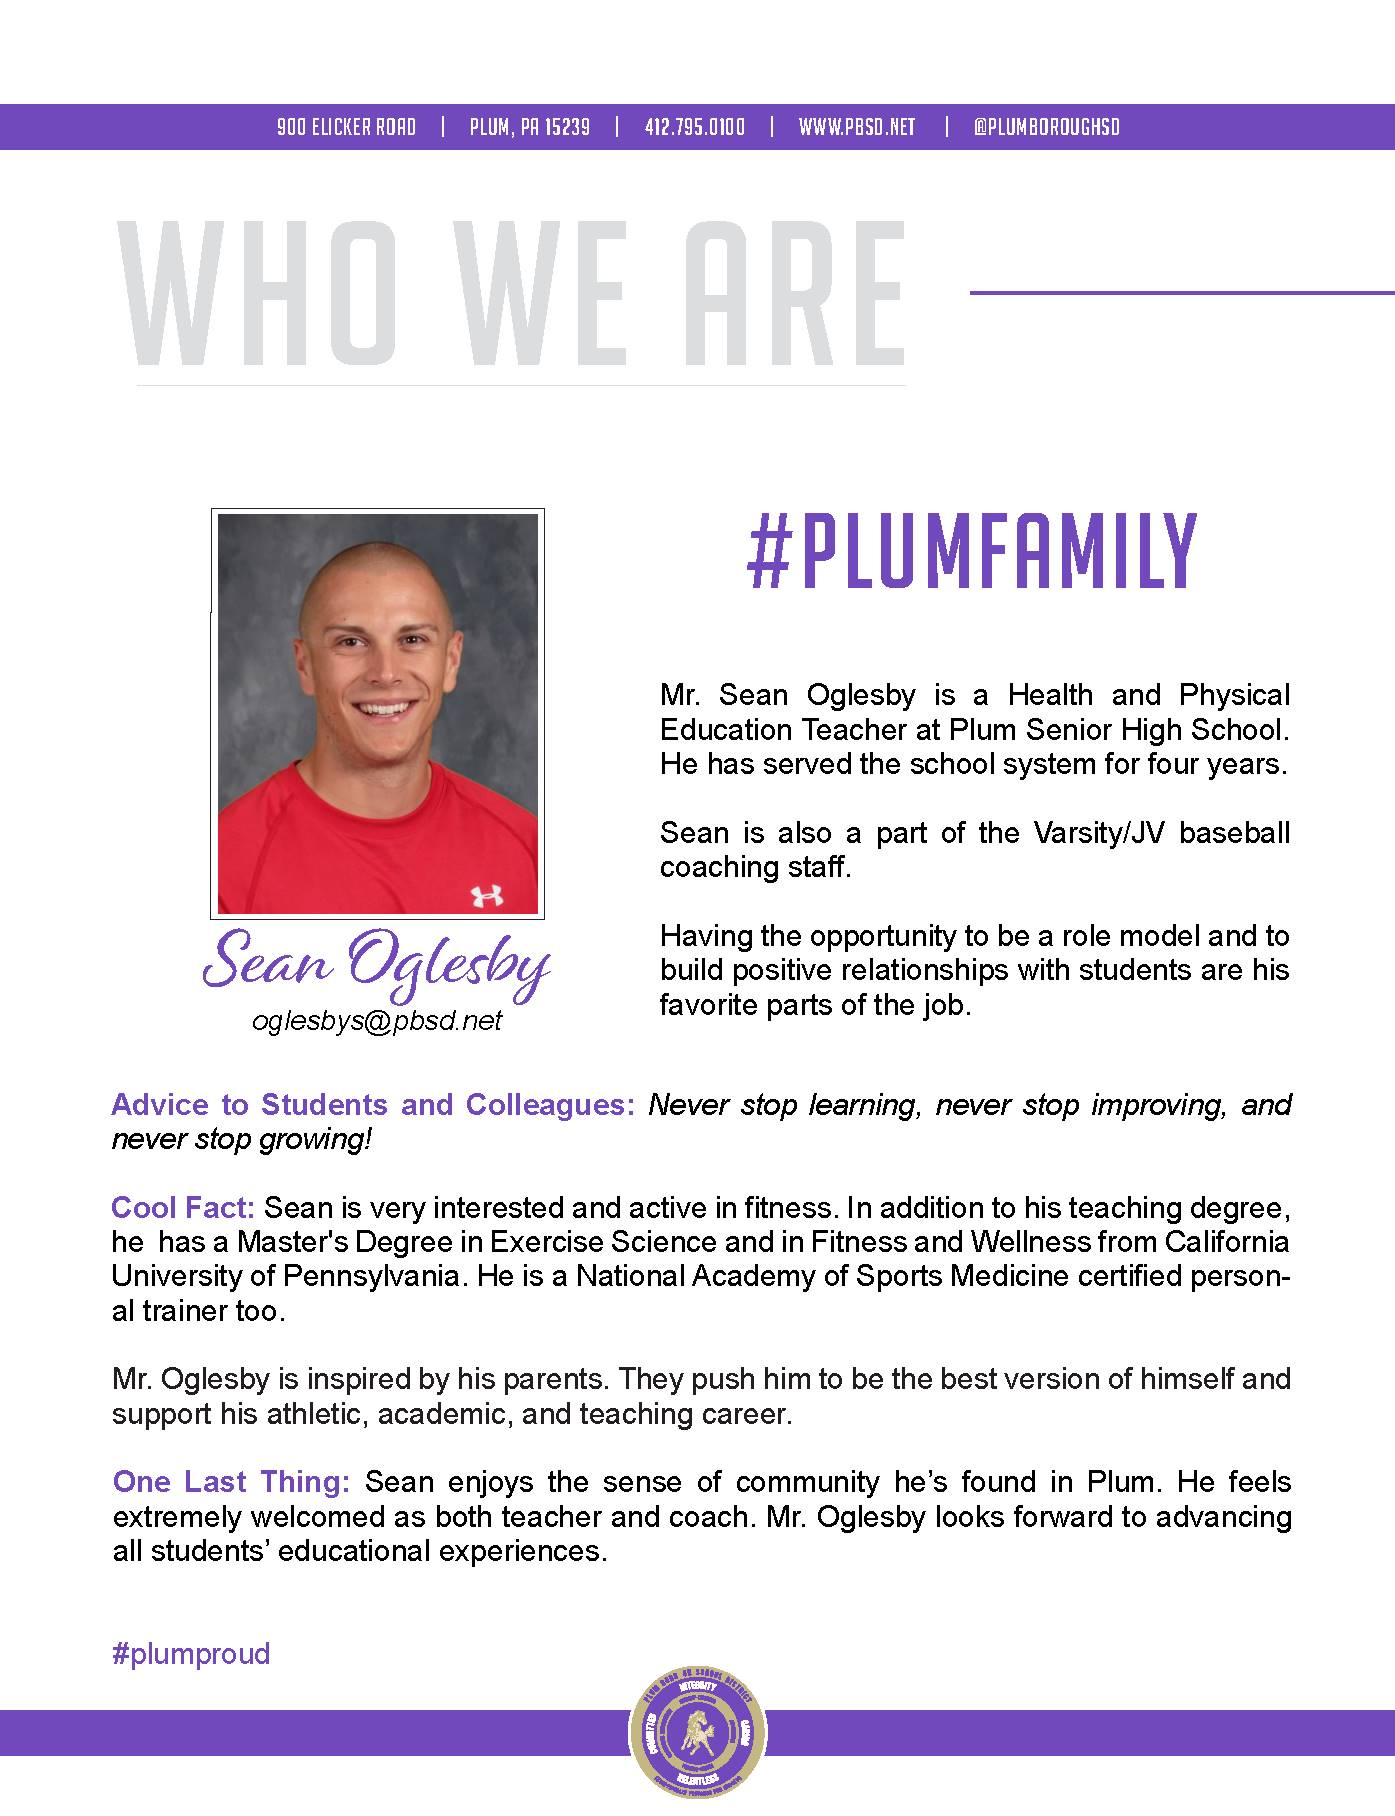 Who We Are Wednesday features Sean Oglesby.